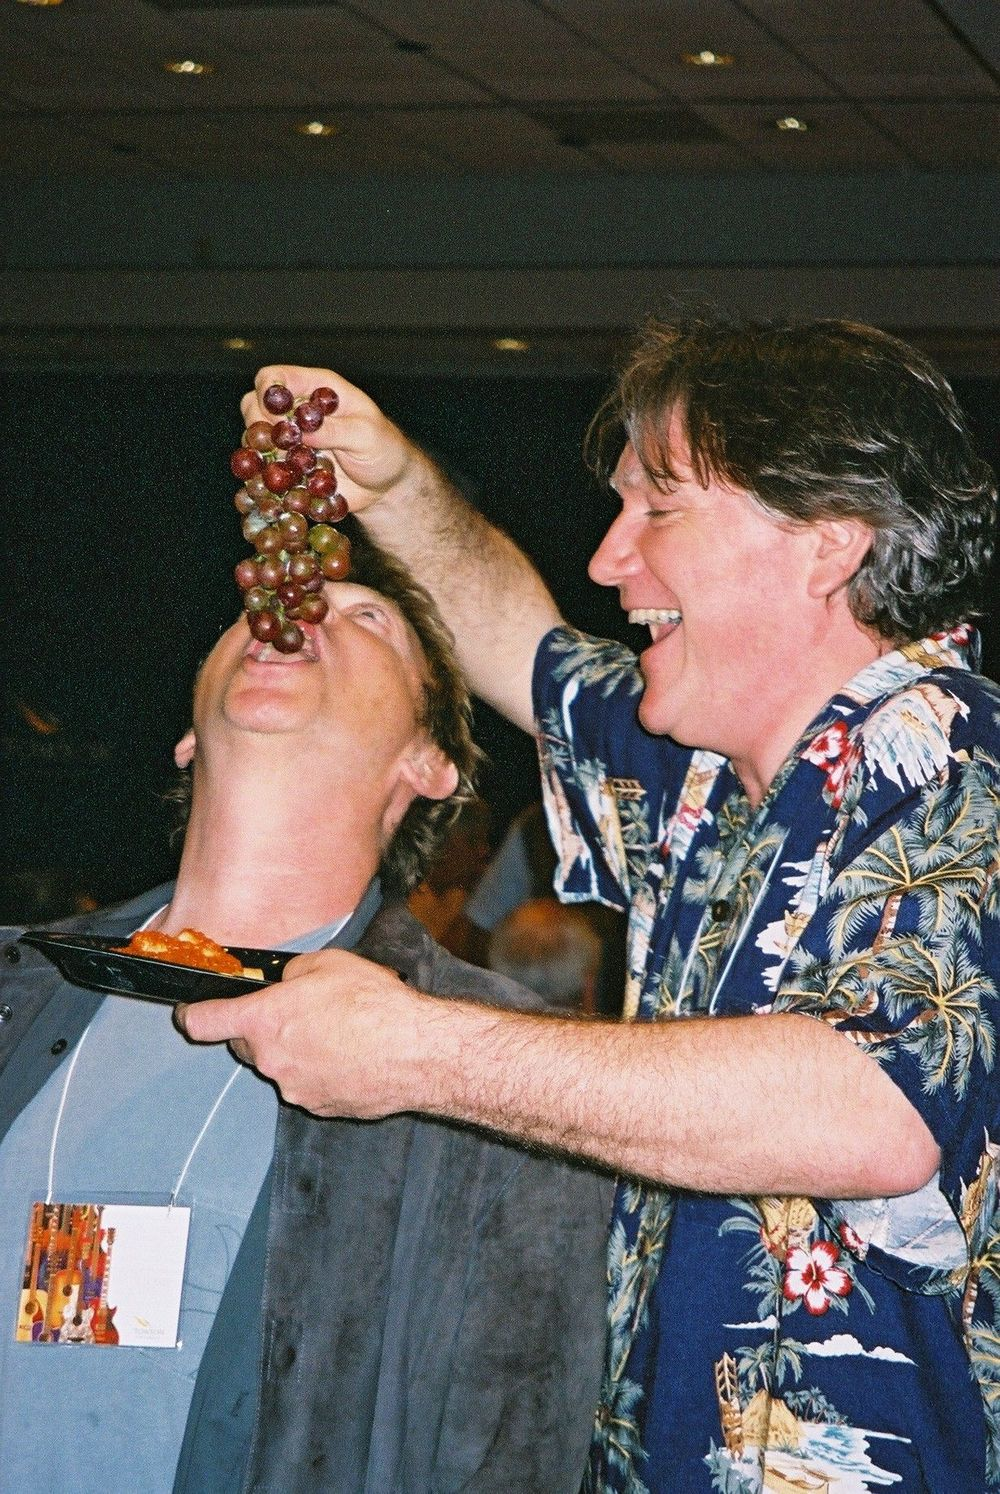 Andy, Ben and the Grape